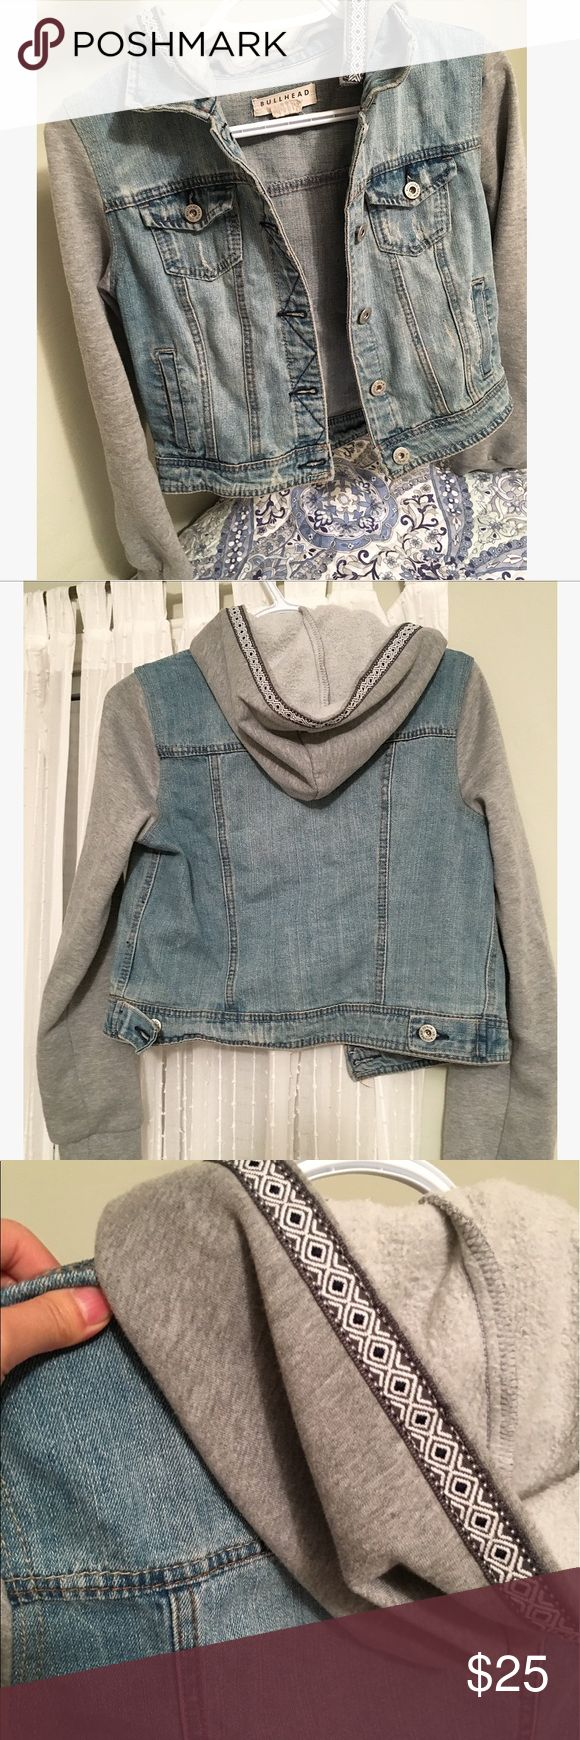 Hooded jean jacket with grey sleeves LIKE NEW Condition; purchased from PAC SUN Urban Outfitters Jackets & Coats Jean Jackets